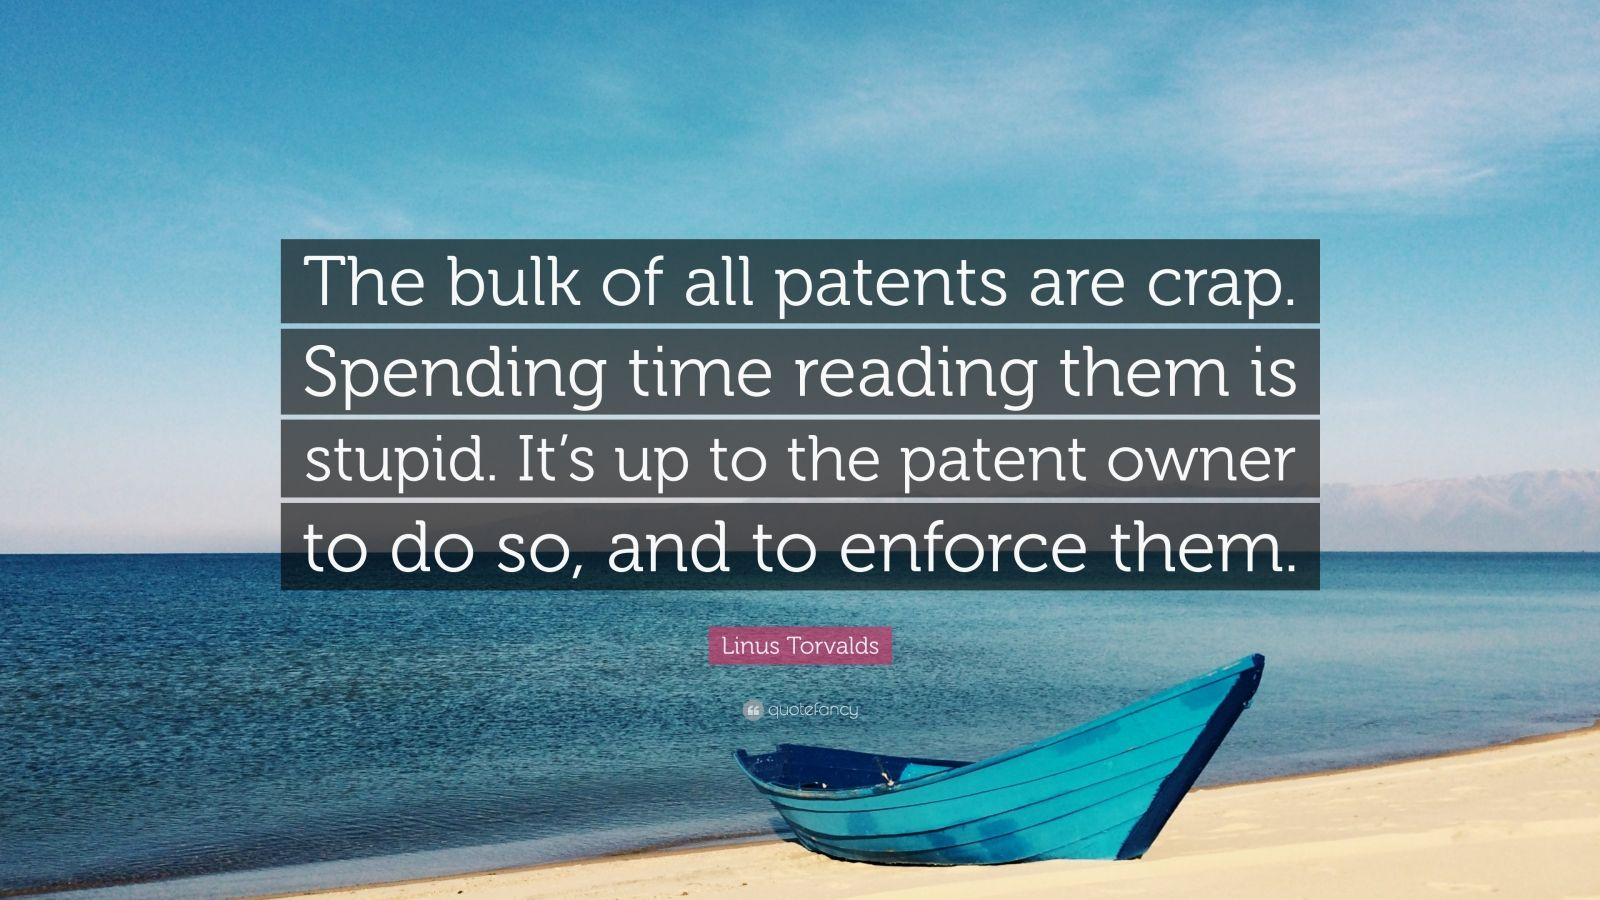 """Linus Torvalds Quote: """"The bulk of all patents are crap. Spending time reading them is stupid. It's up to the patent owner to do so, and to enforce them."""""""